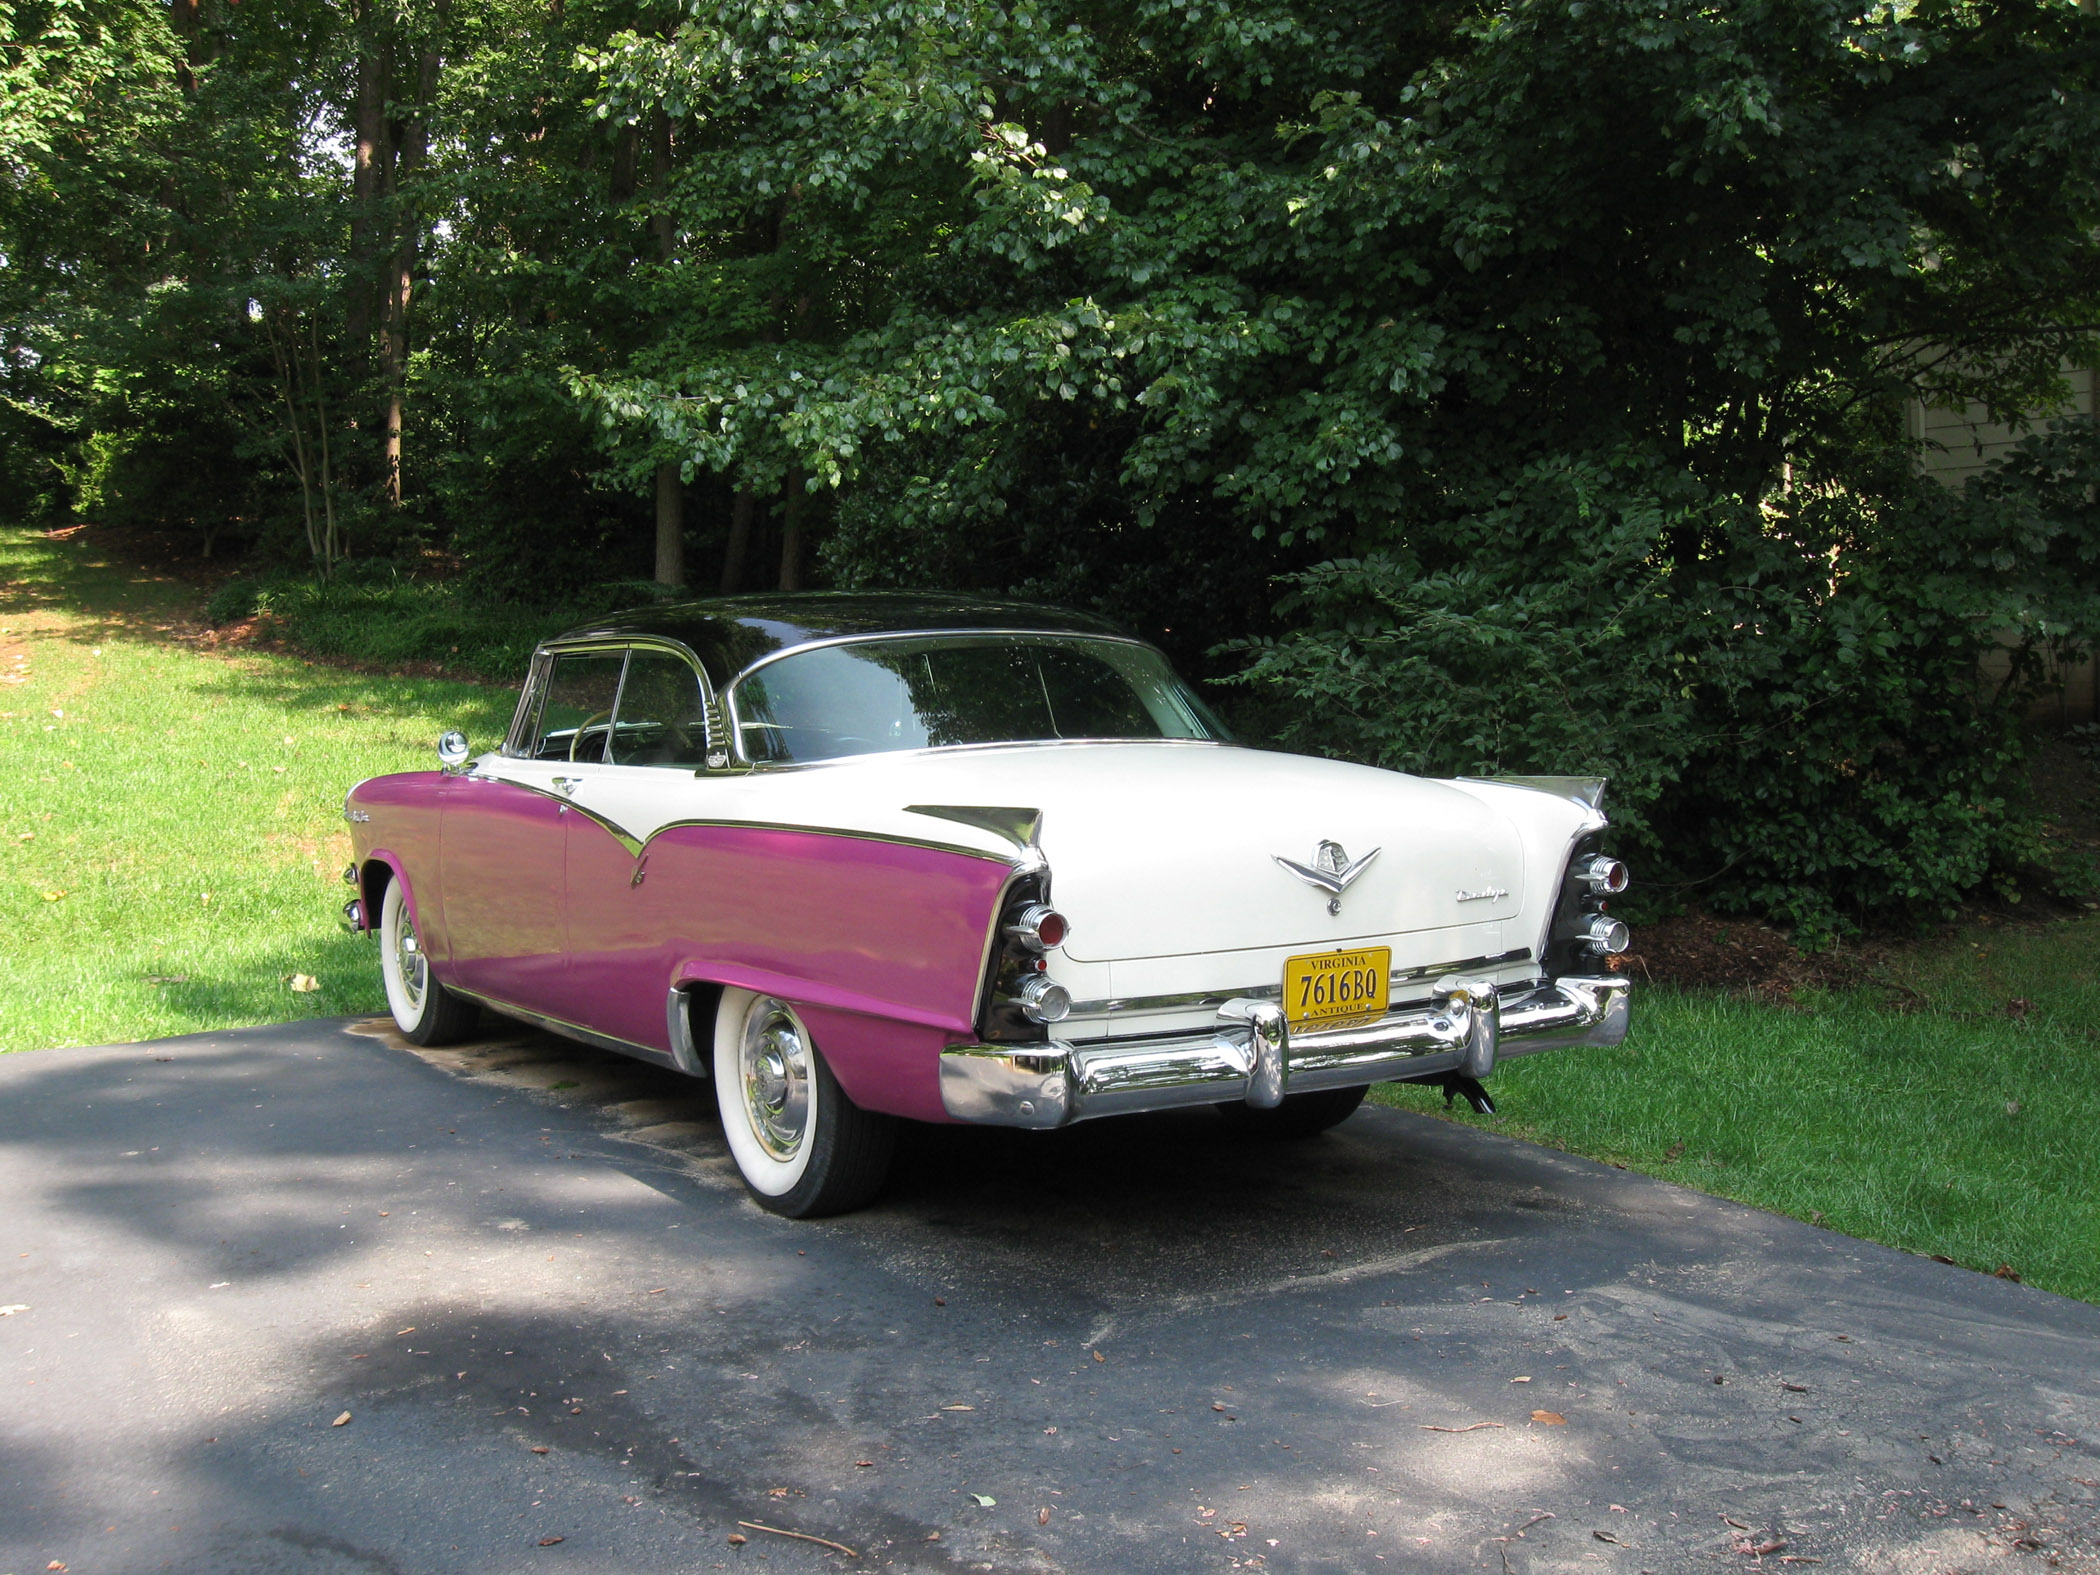 Friedl Thought This Multi Colored Dodge Personified The 1950s A Cursory Inspection Revealed Hardly Any Rust And No Body Damage On Test Drive He Noticed